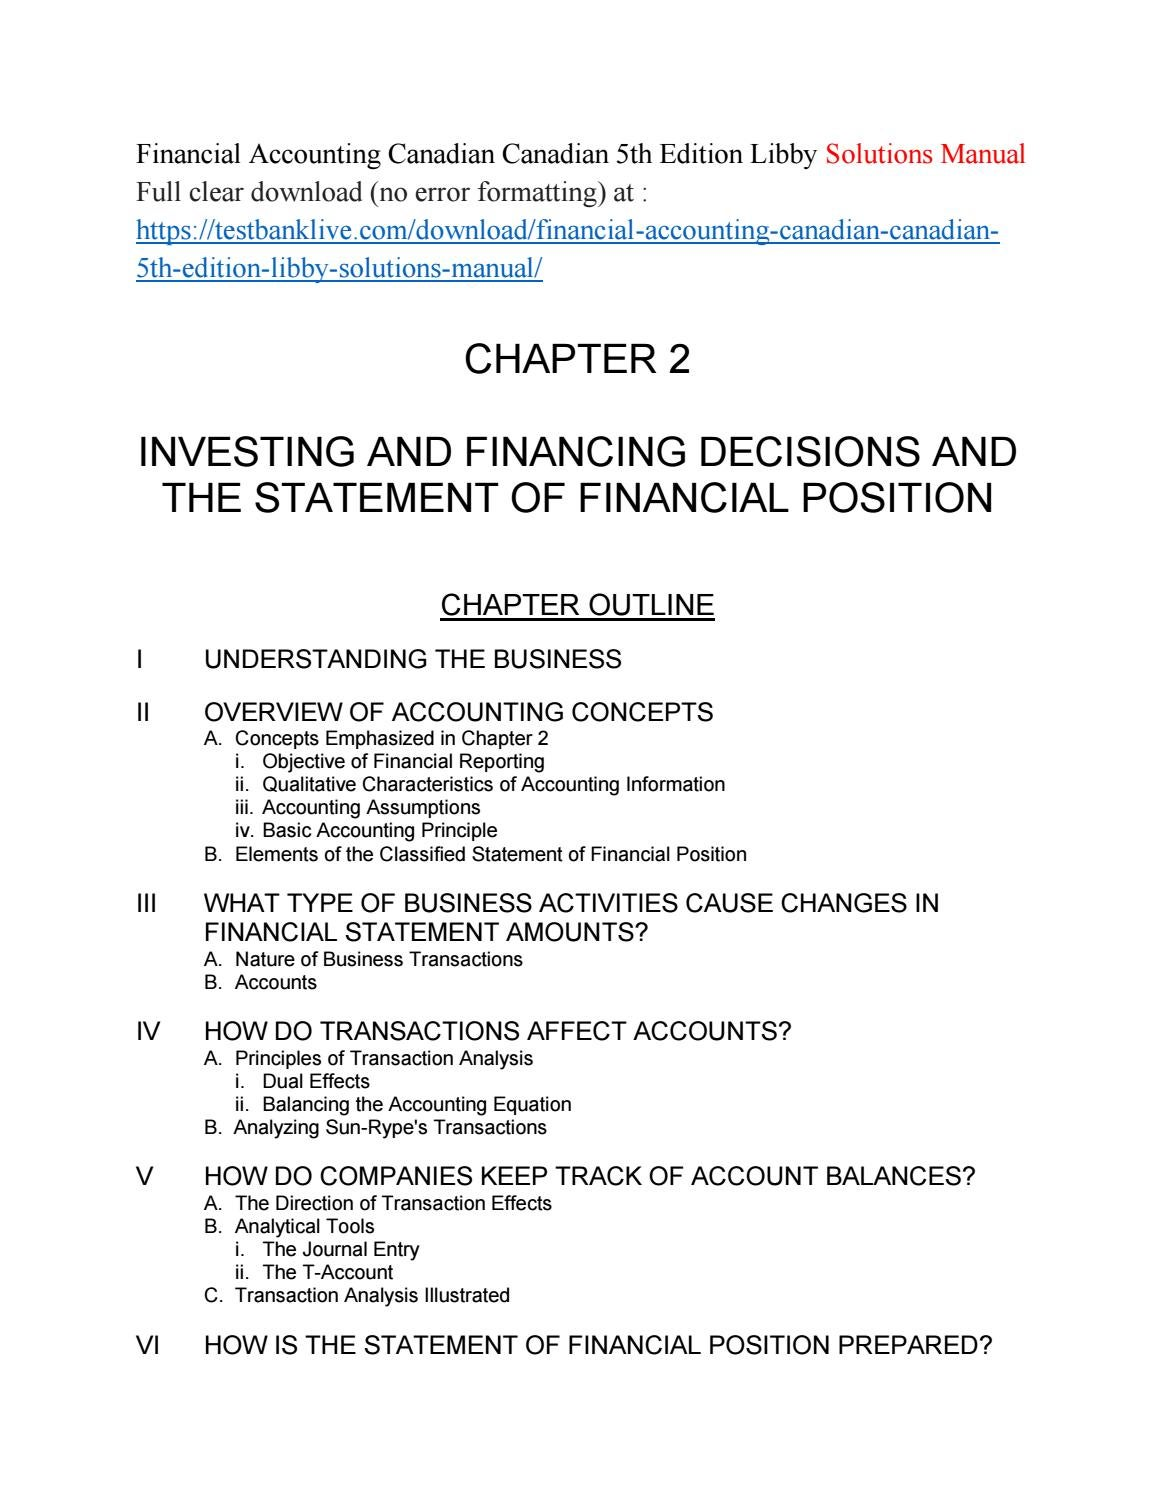 Financial accounting canadian canadian 5th edition libby solutions manual  by kingdom488 - issuu